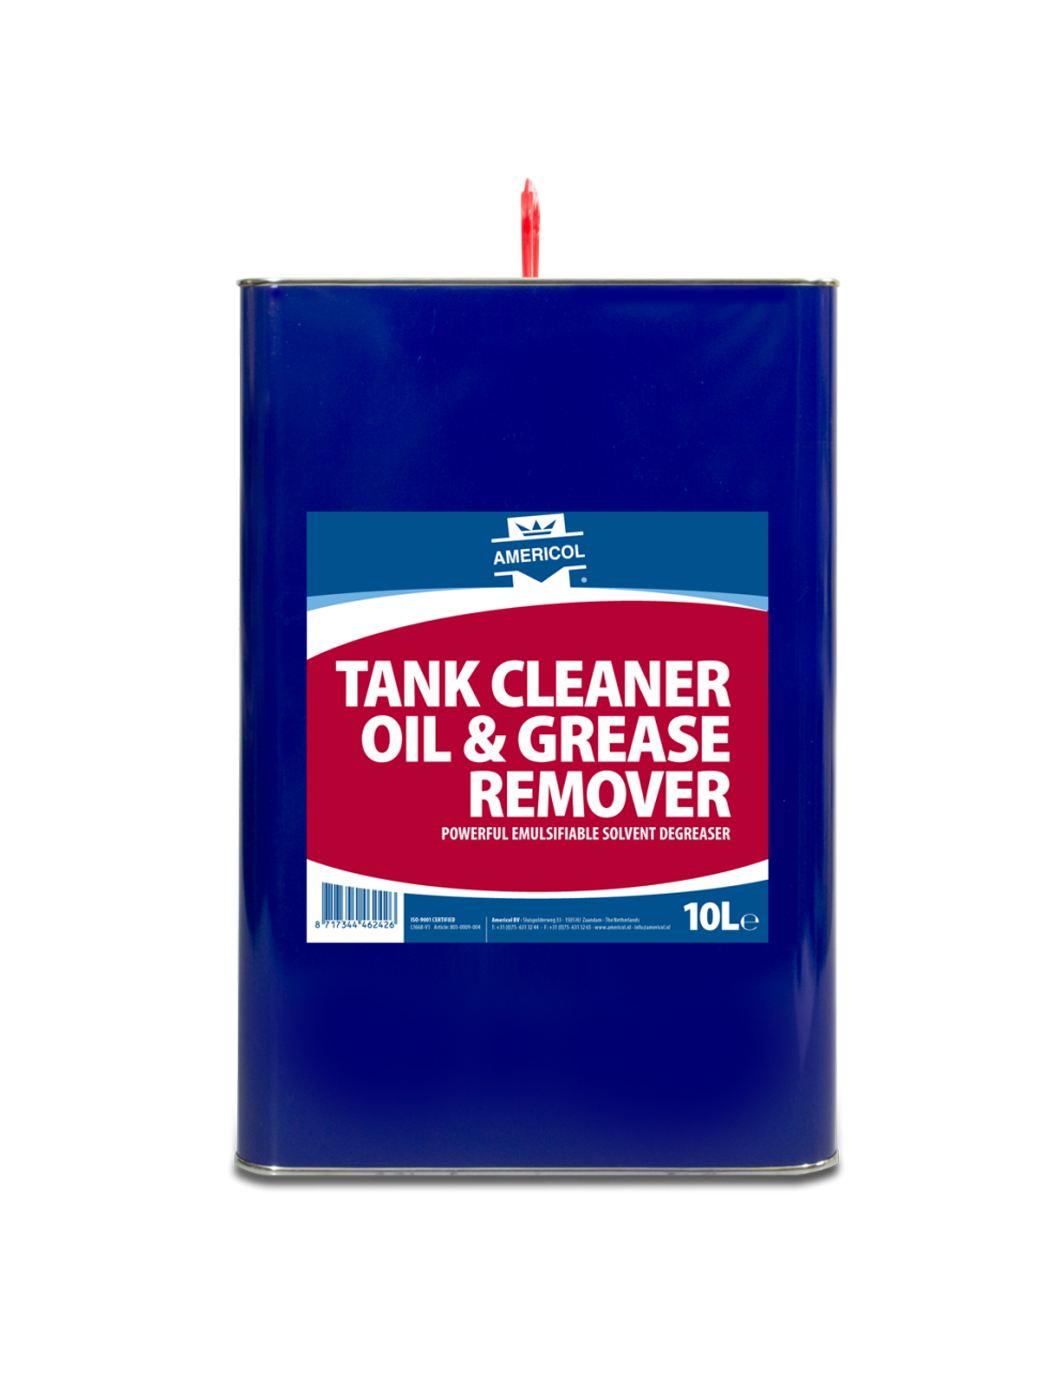 Tank Cleaner Oil Grease Remover 10L